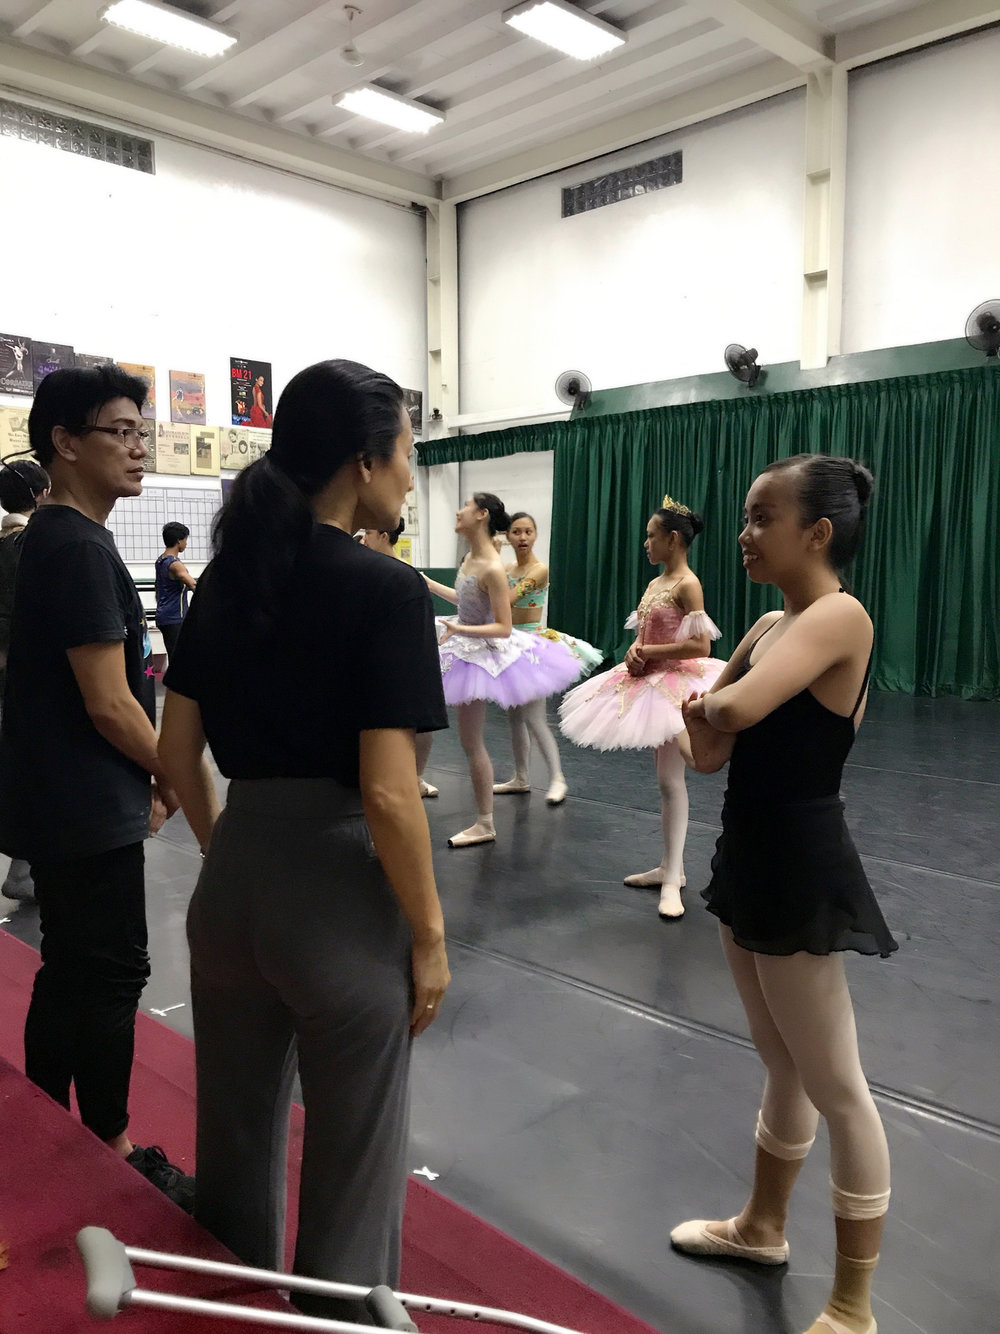 Co-artistic directors Lisa Macuja-Elizalde and Osias Barroso confer with BM trainee Elyssabeth Apilado after rehearsals.